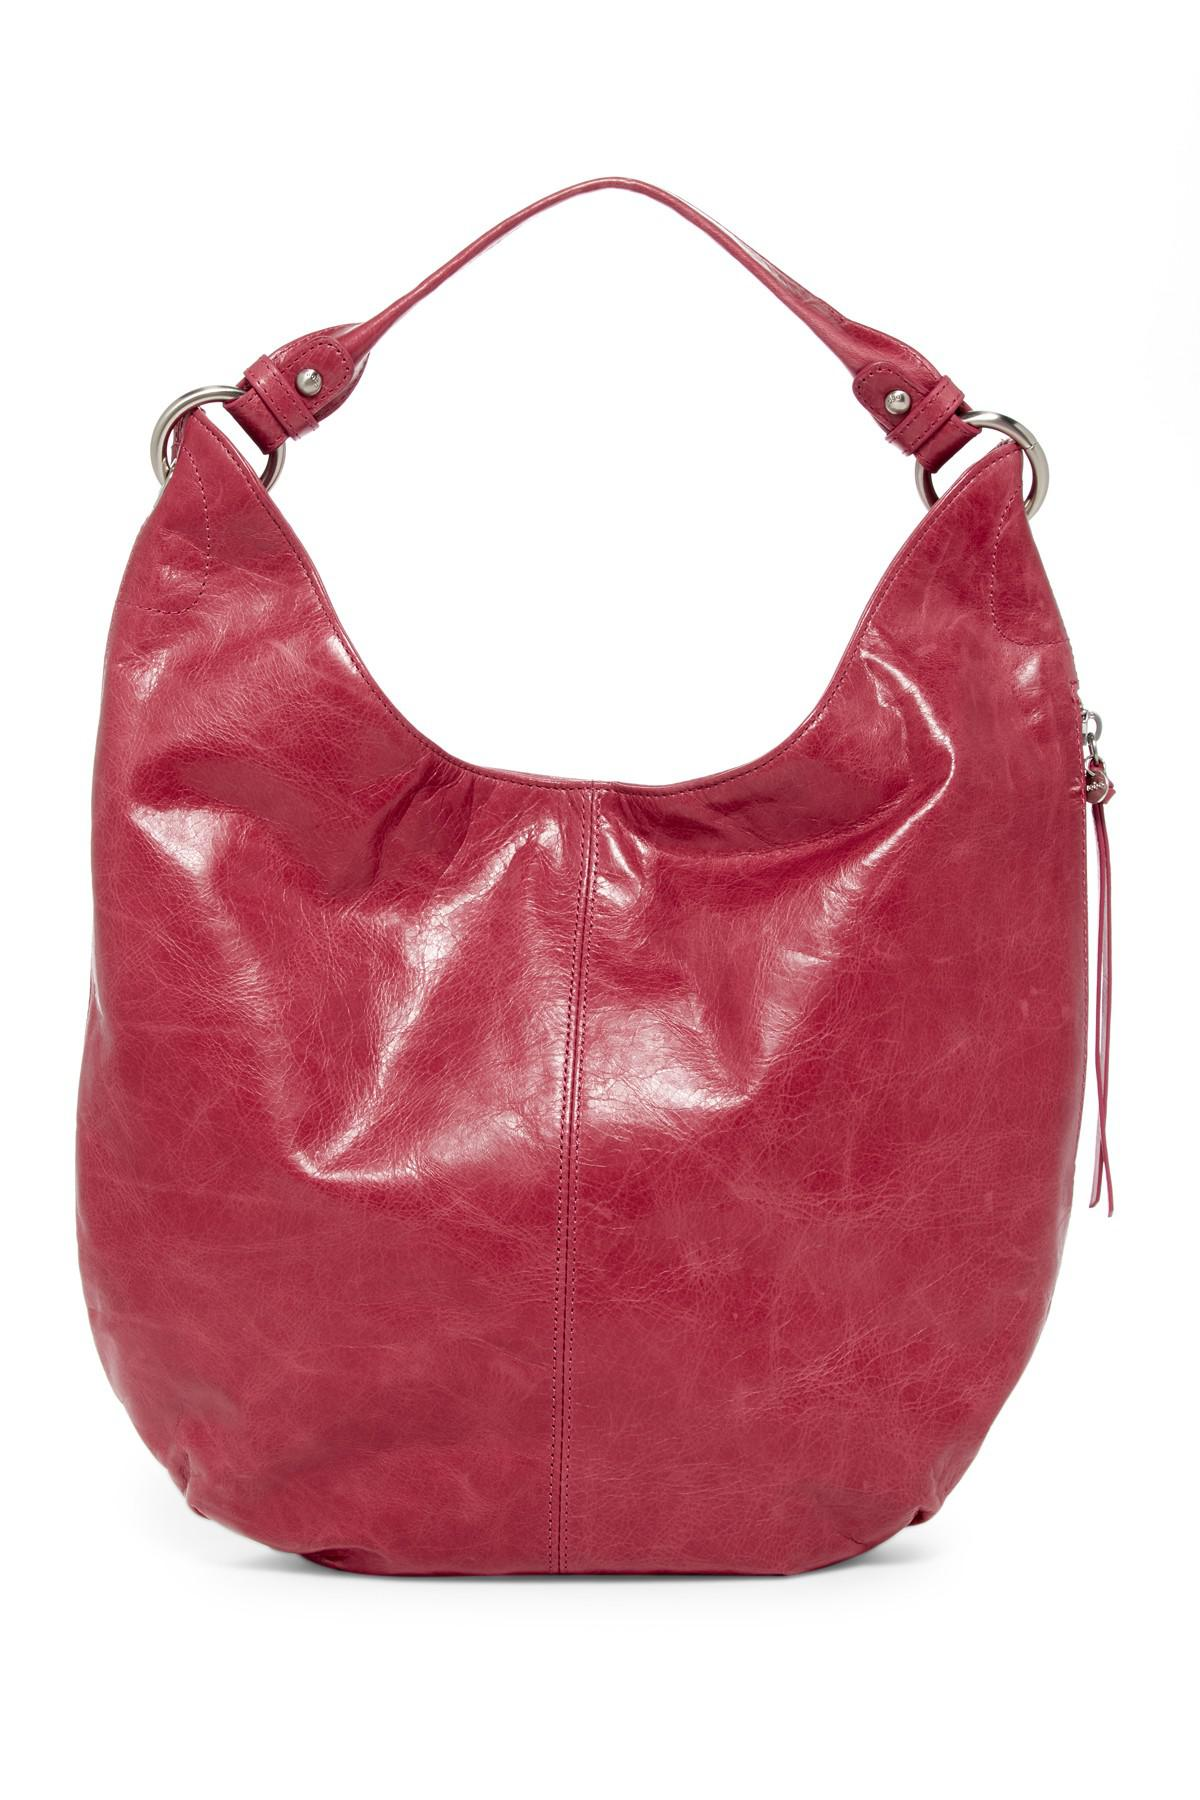 aa8016c19 Lyst - Hobo Gardner Leather in Red